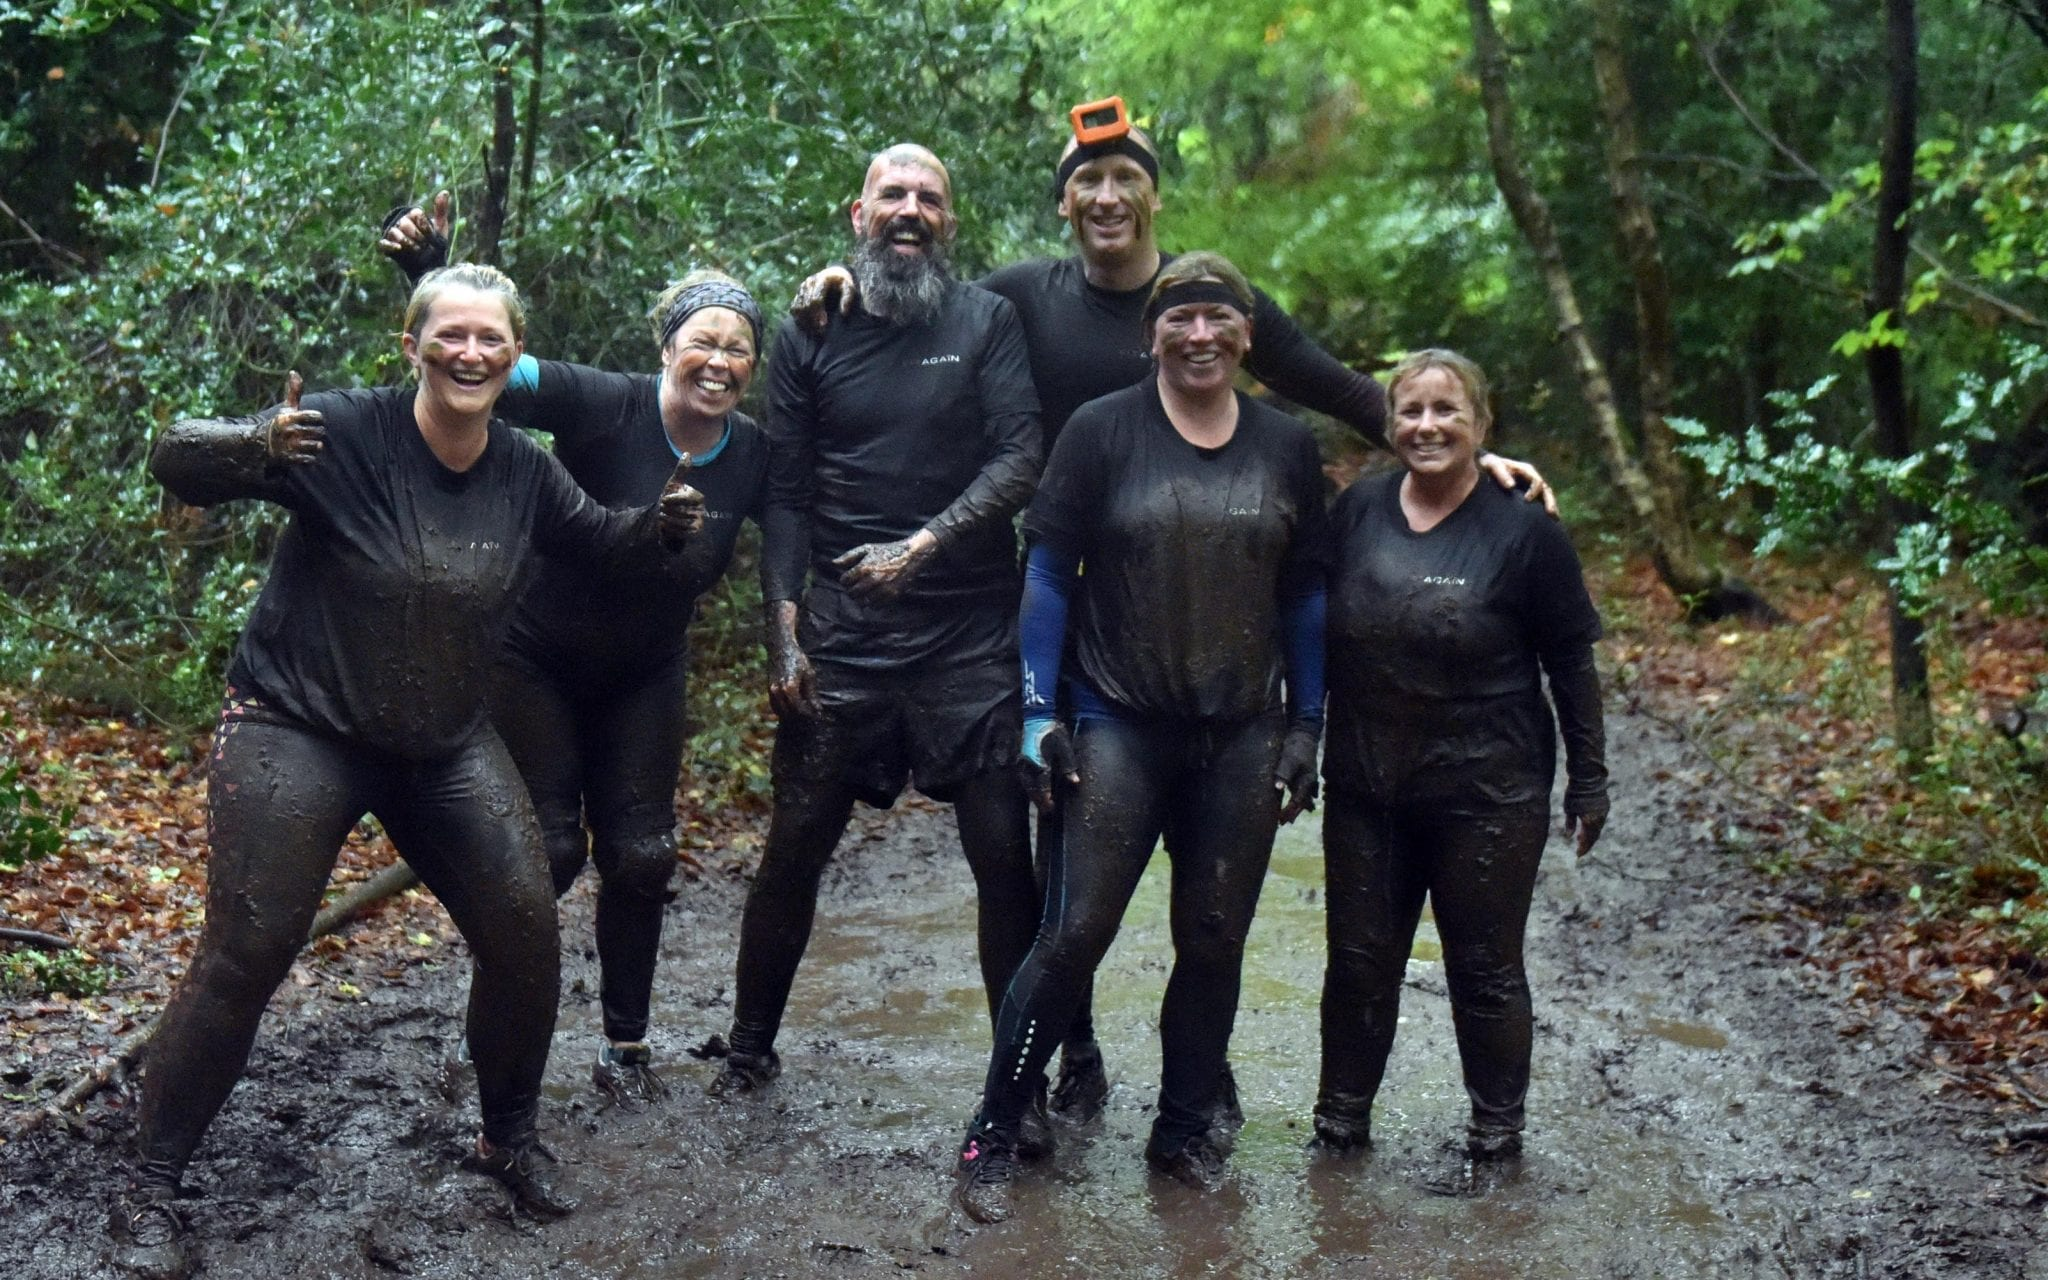 fitness course royal marine assault course 5 km and 10 km team building day ou